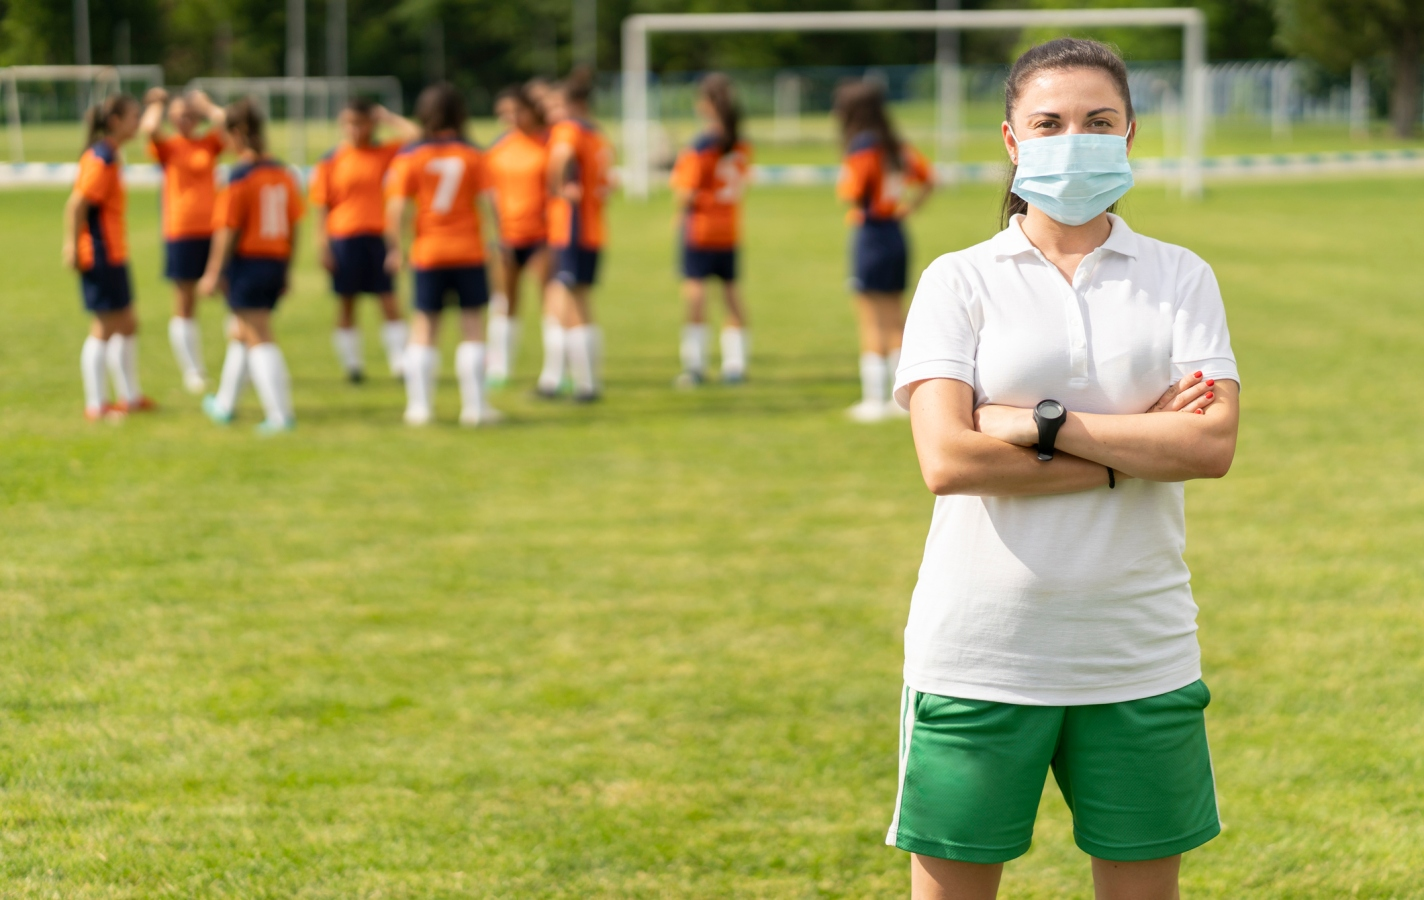 COVID-19. Portrait of a young football coach wearing face mask due to coronavirus pandemic.